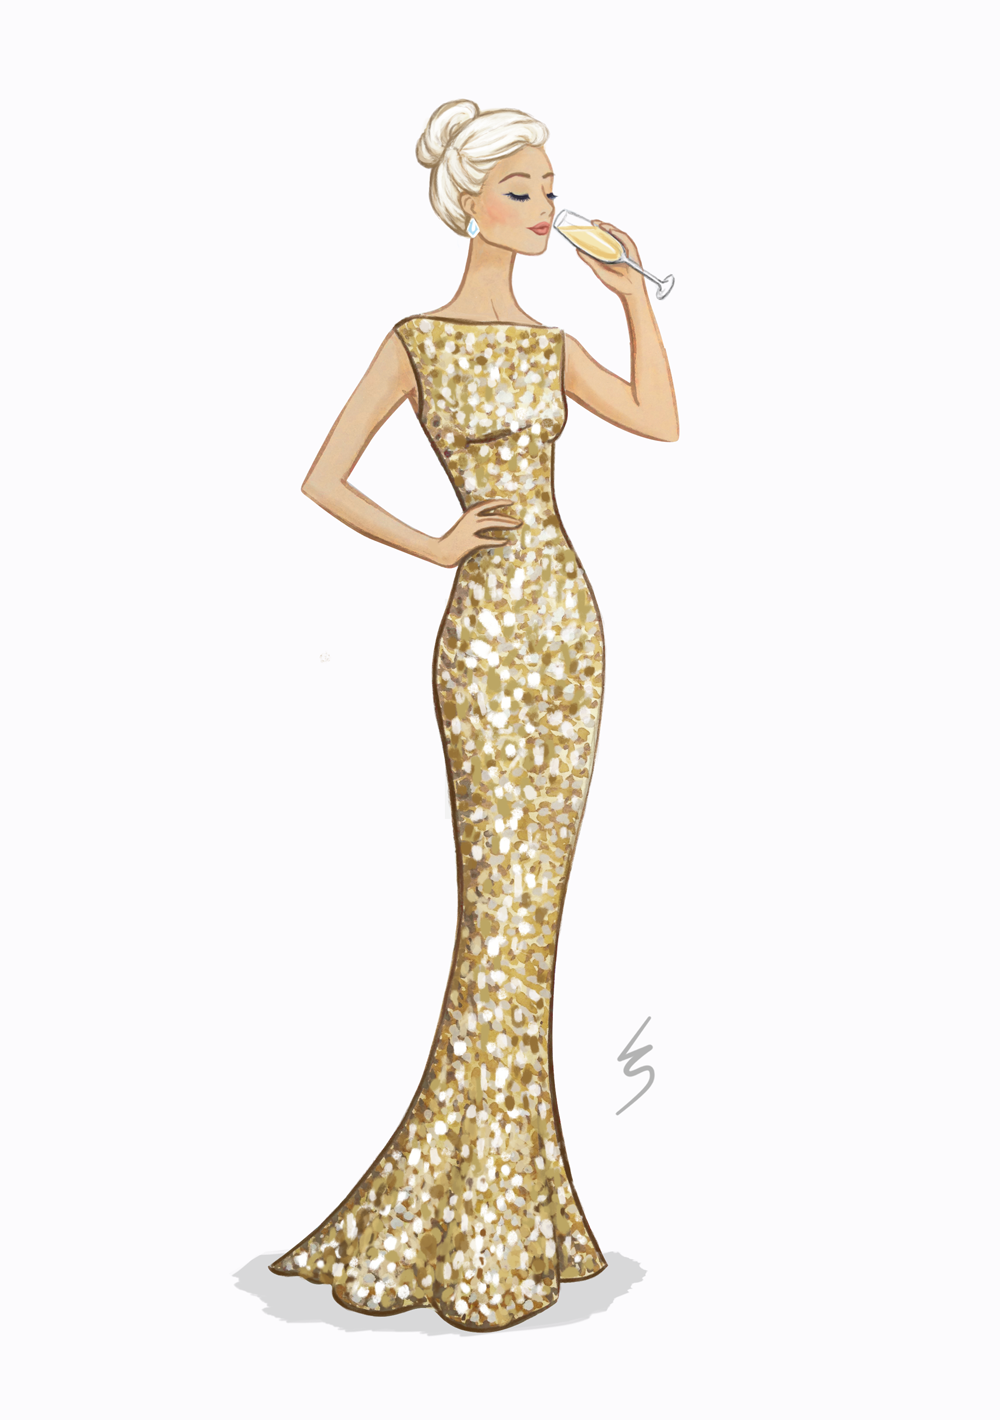 Lydia Snowden Illustration. Fashion Illustration. Champagne gold ...